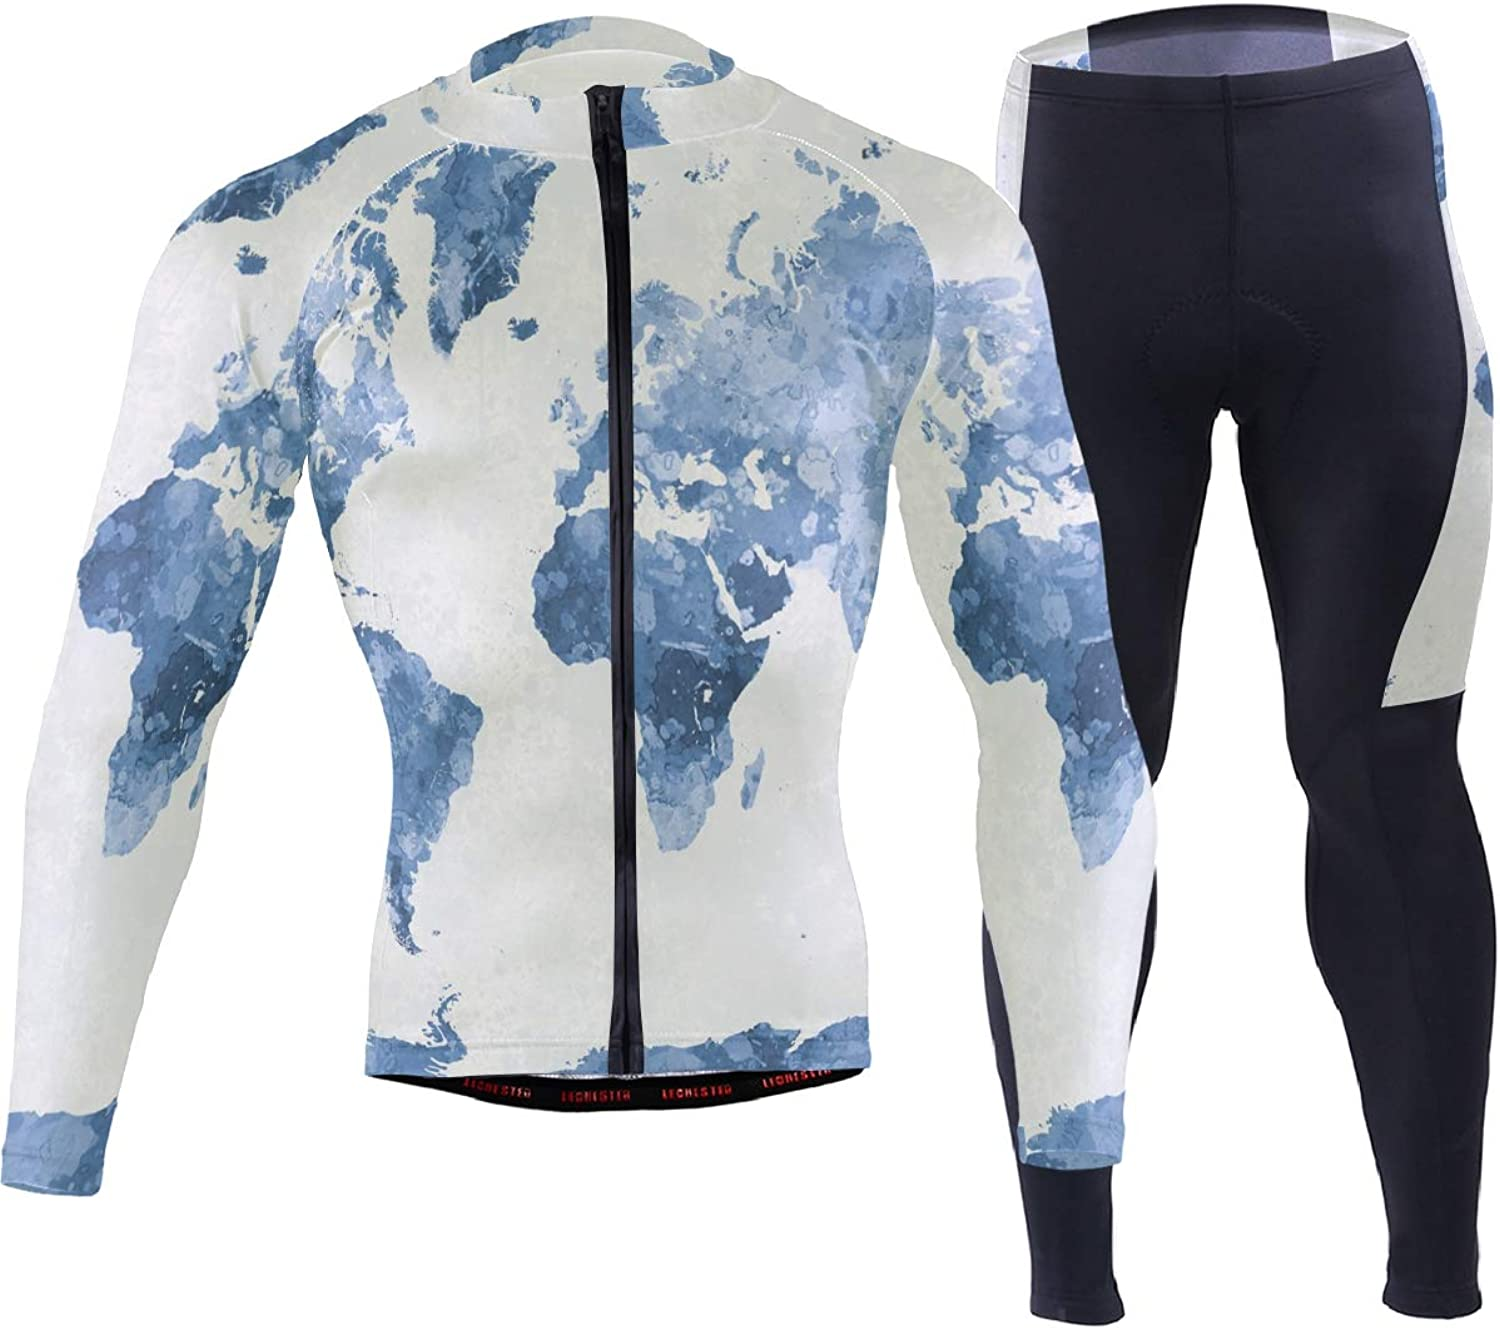 FAJRO WorldMapinWatercolorblueee Sportswear Suit Bike Outfit Set Breathable Quick Dry 3D Padded Pants